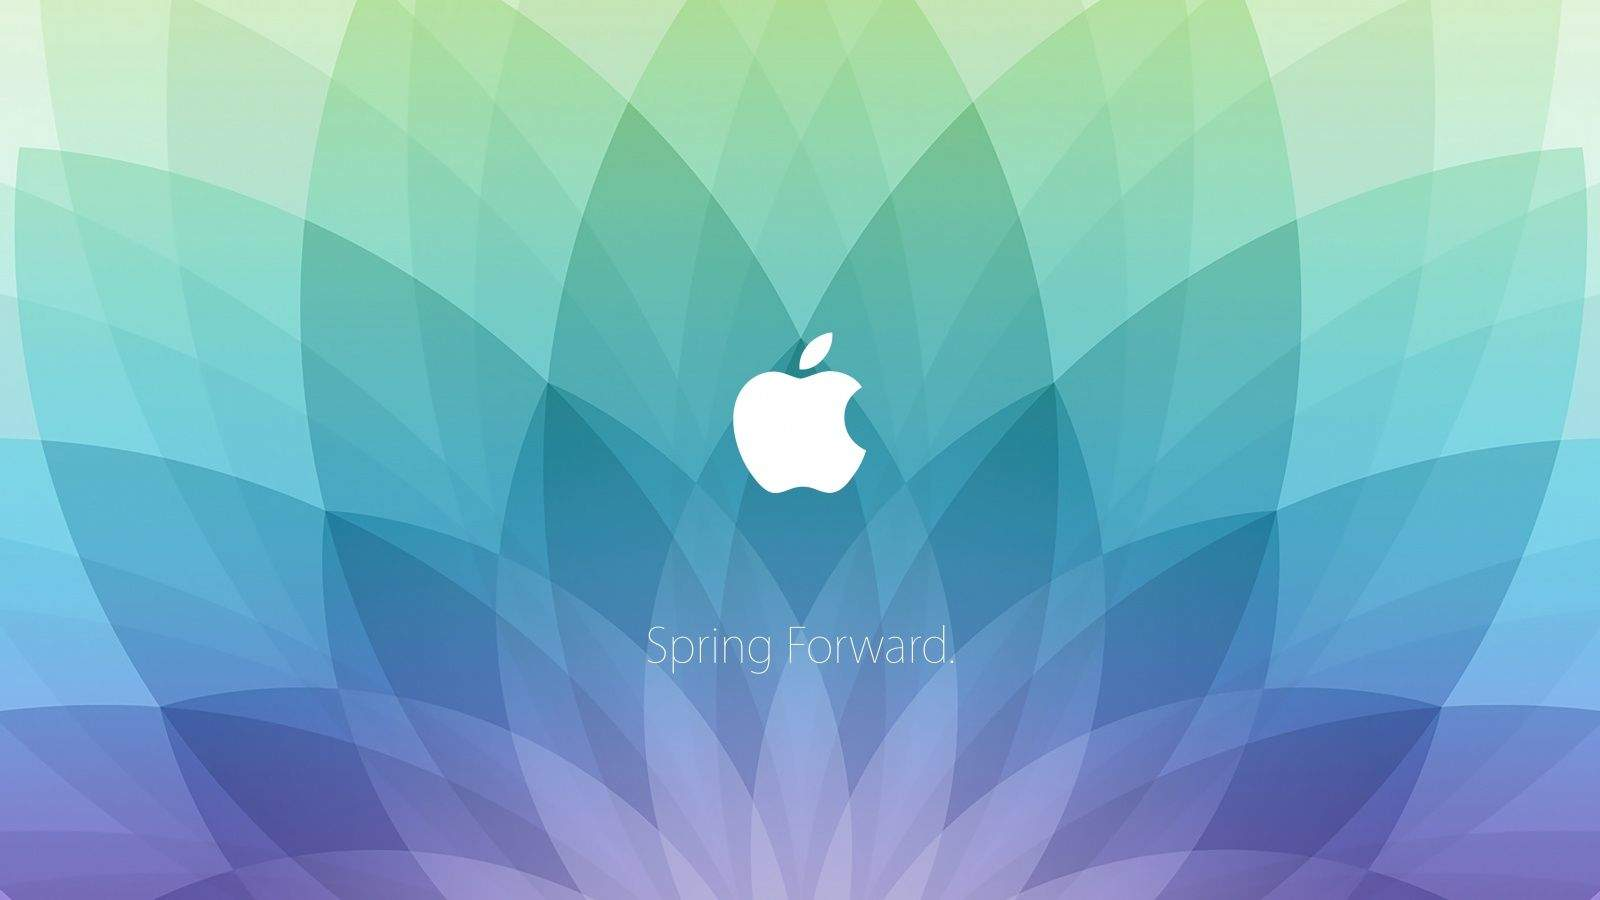 apple springs chat Chat con mujeres de apple springs gratis para conocer gente, hacer amigas gratis, ligar en español y buscar pareja, desde internet y el móvil, con vídeo chat.